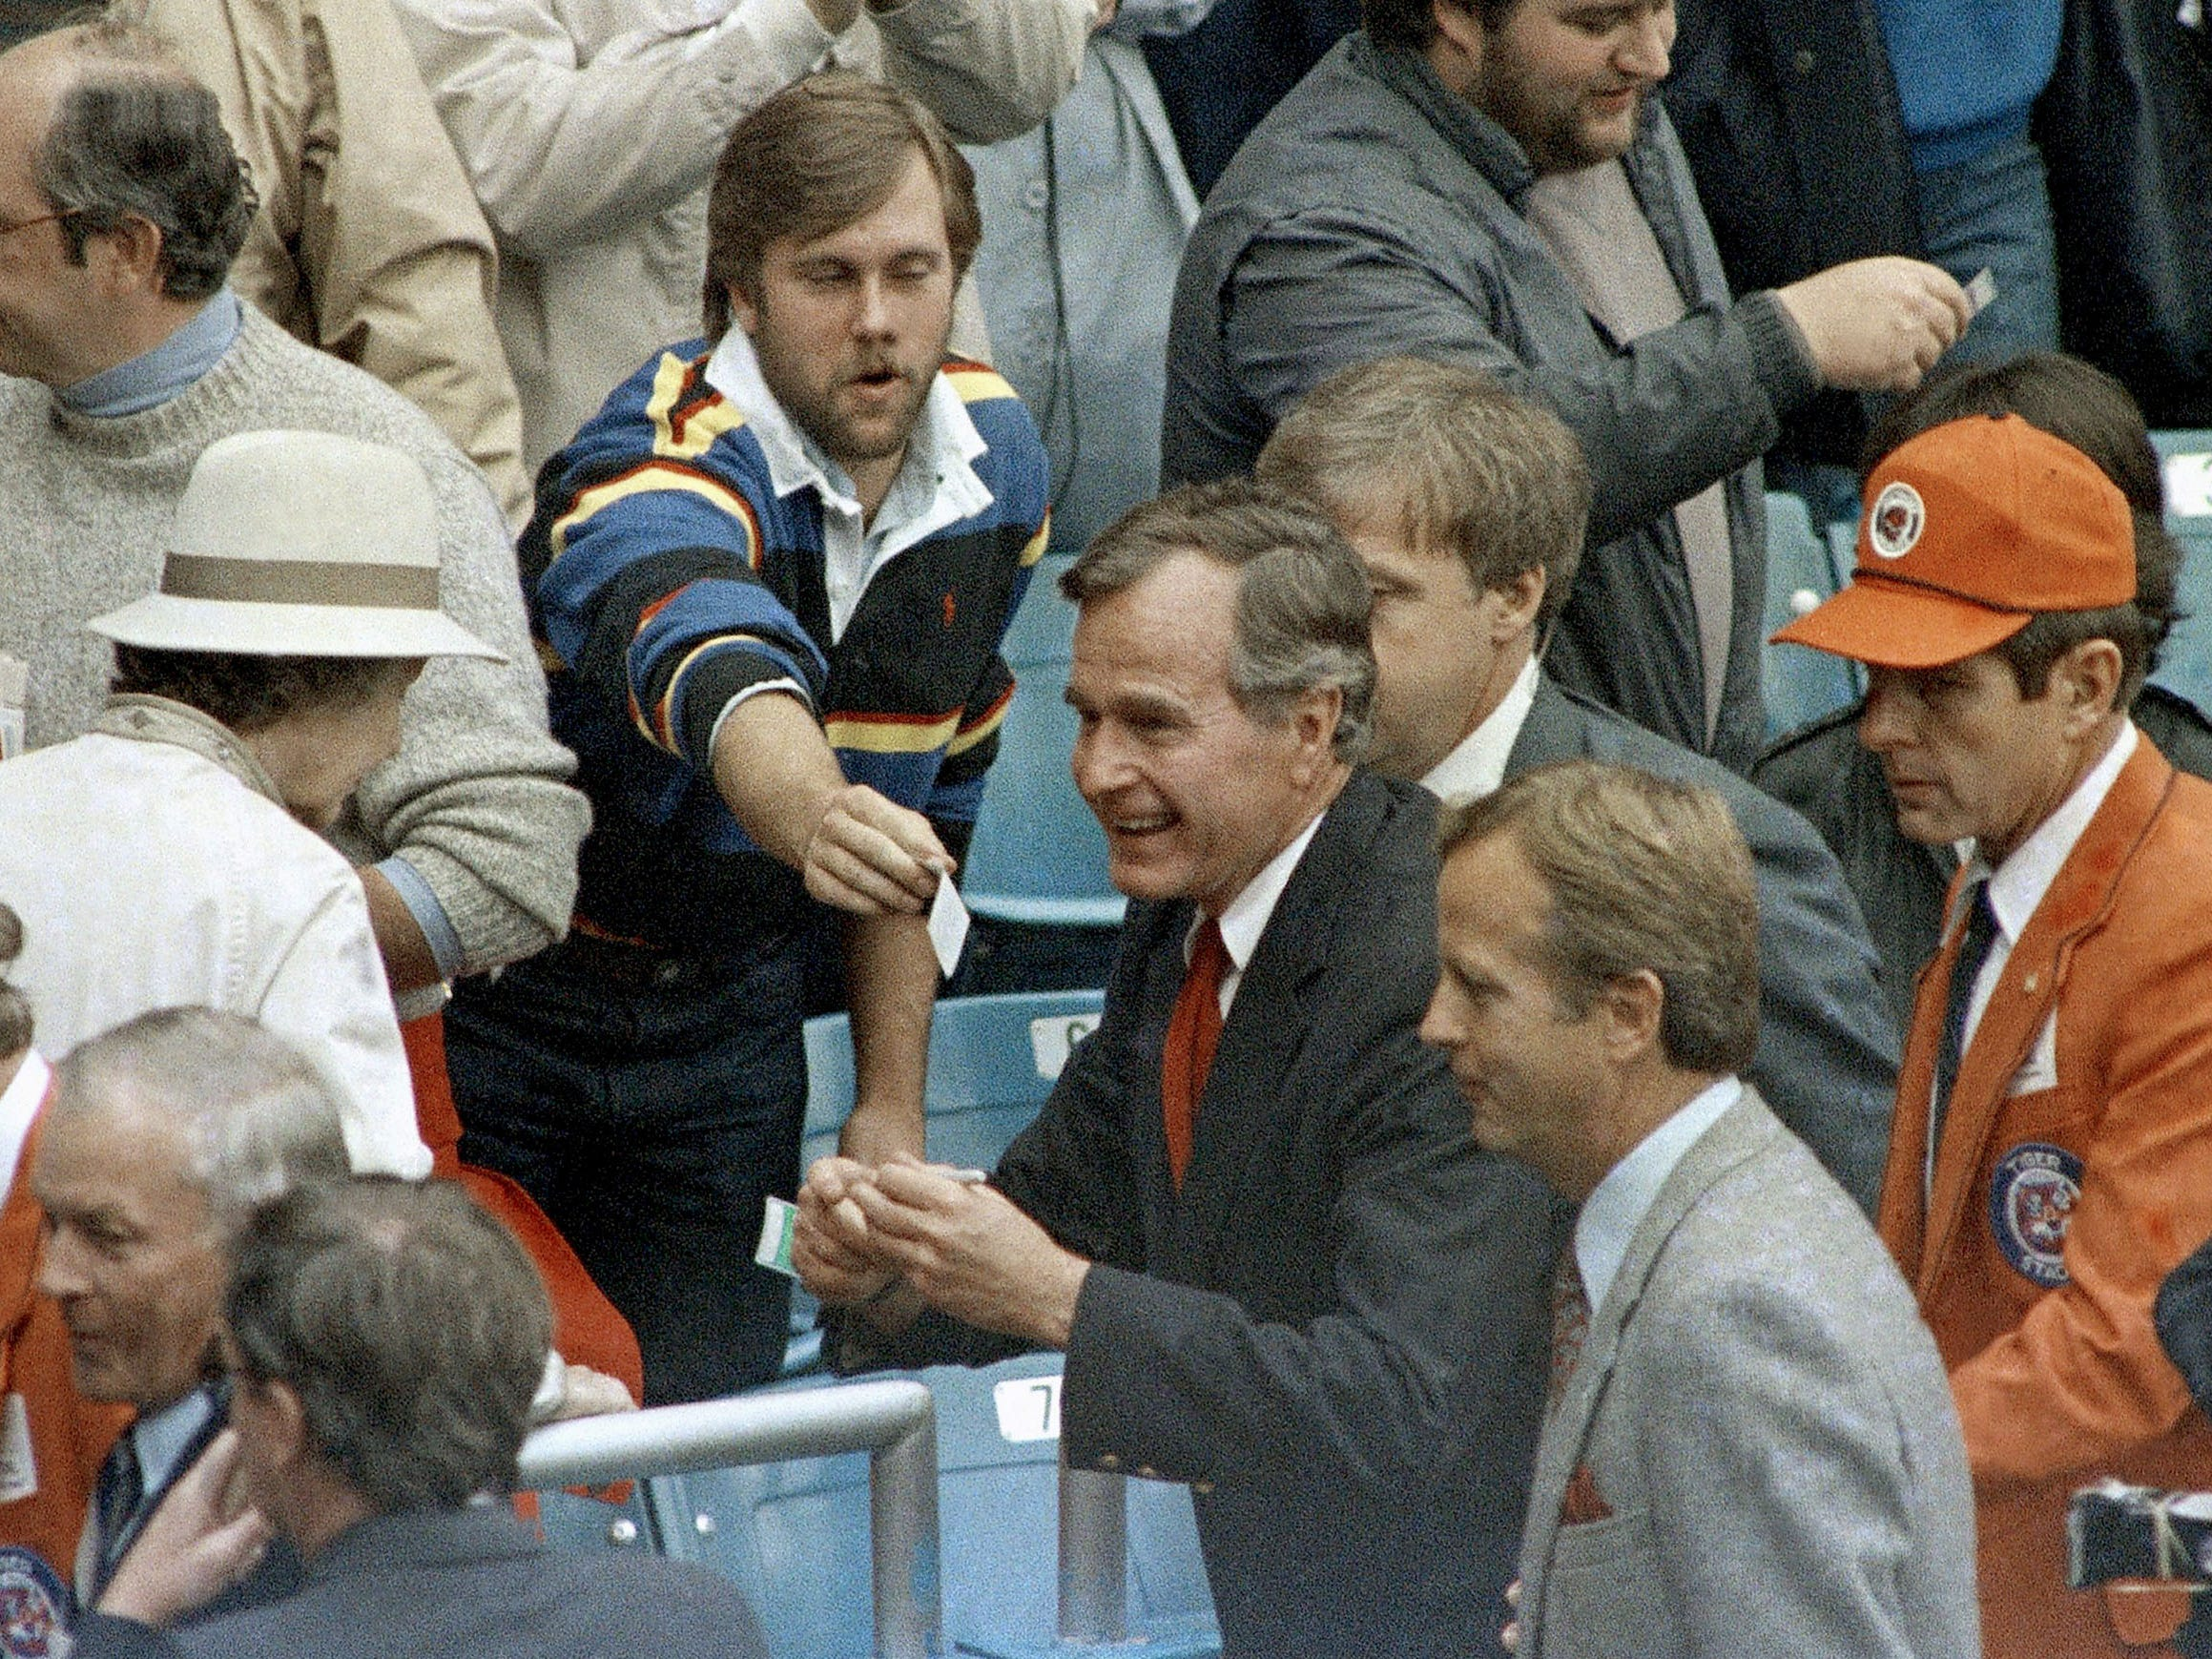 Vice-President George H. Bush at Tiger Stadium for Game 5 of the World Series between the Detroit Tigers and the San Diego Padres on Oct. 14, 1984 in Detroit.